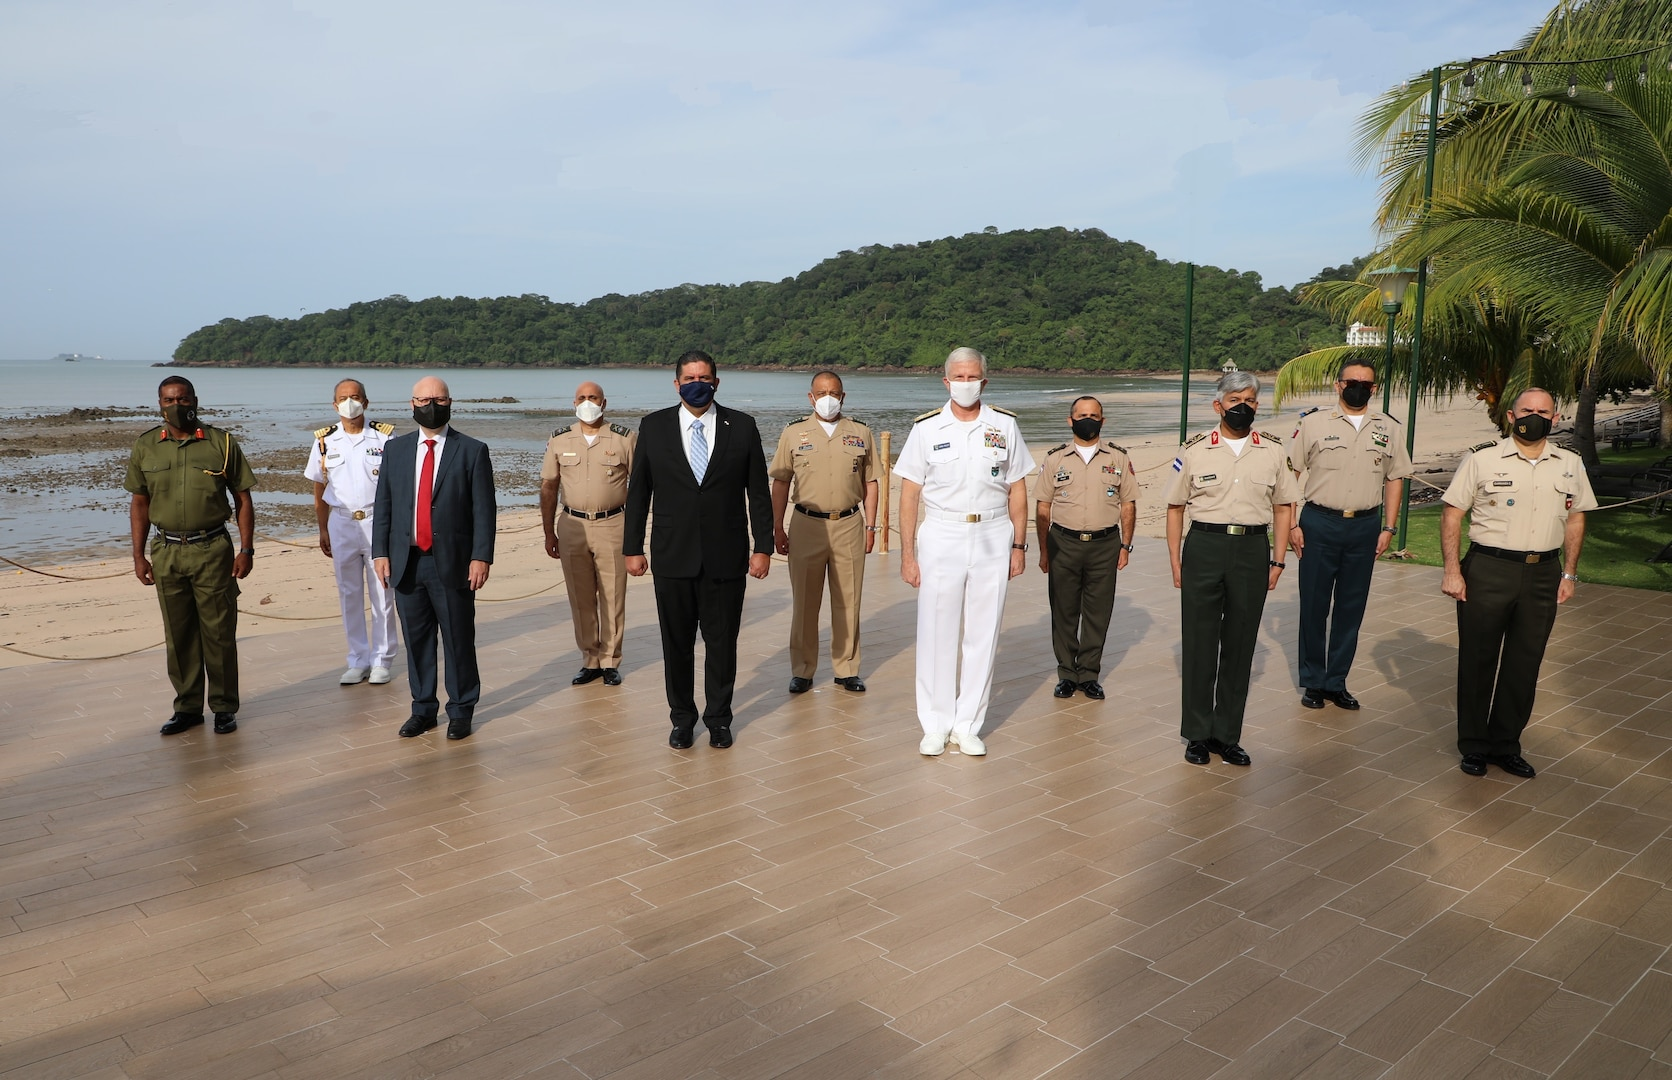 Group photo of security leaders.